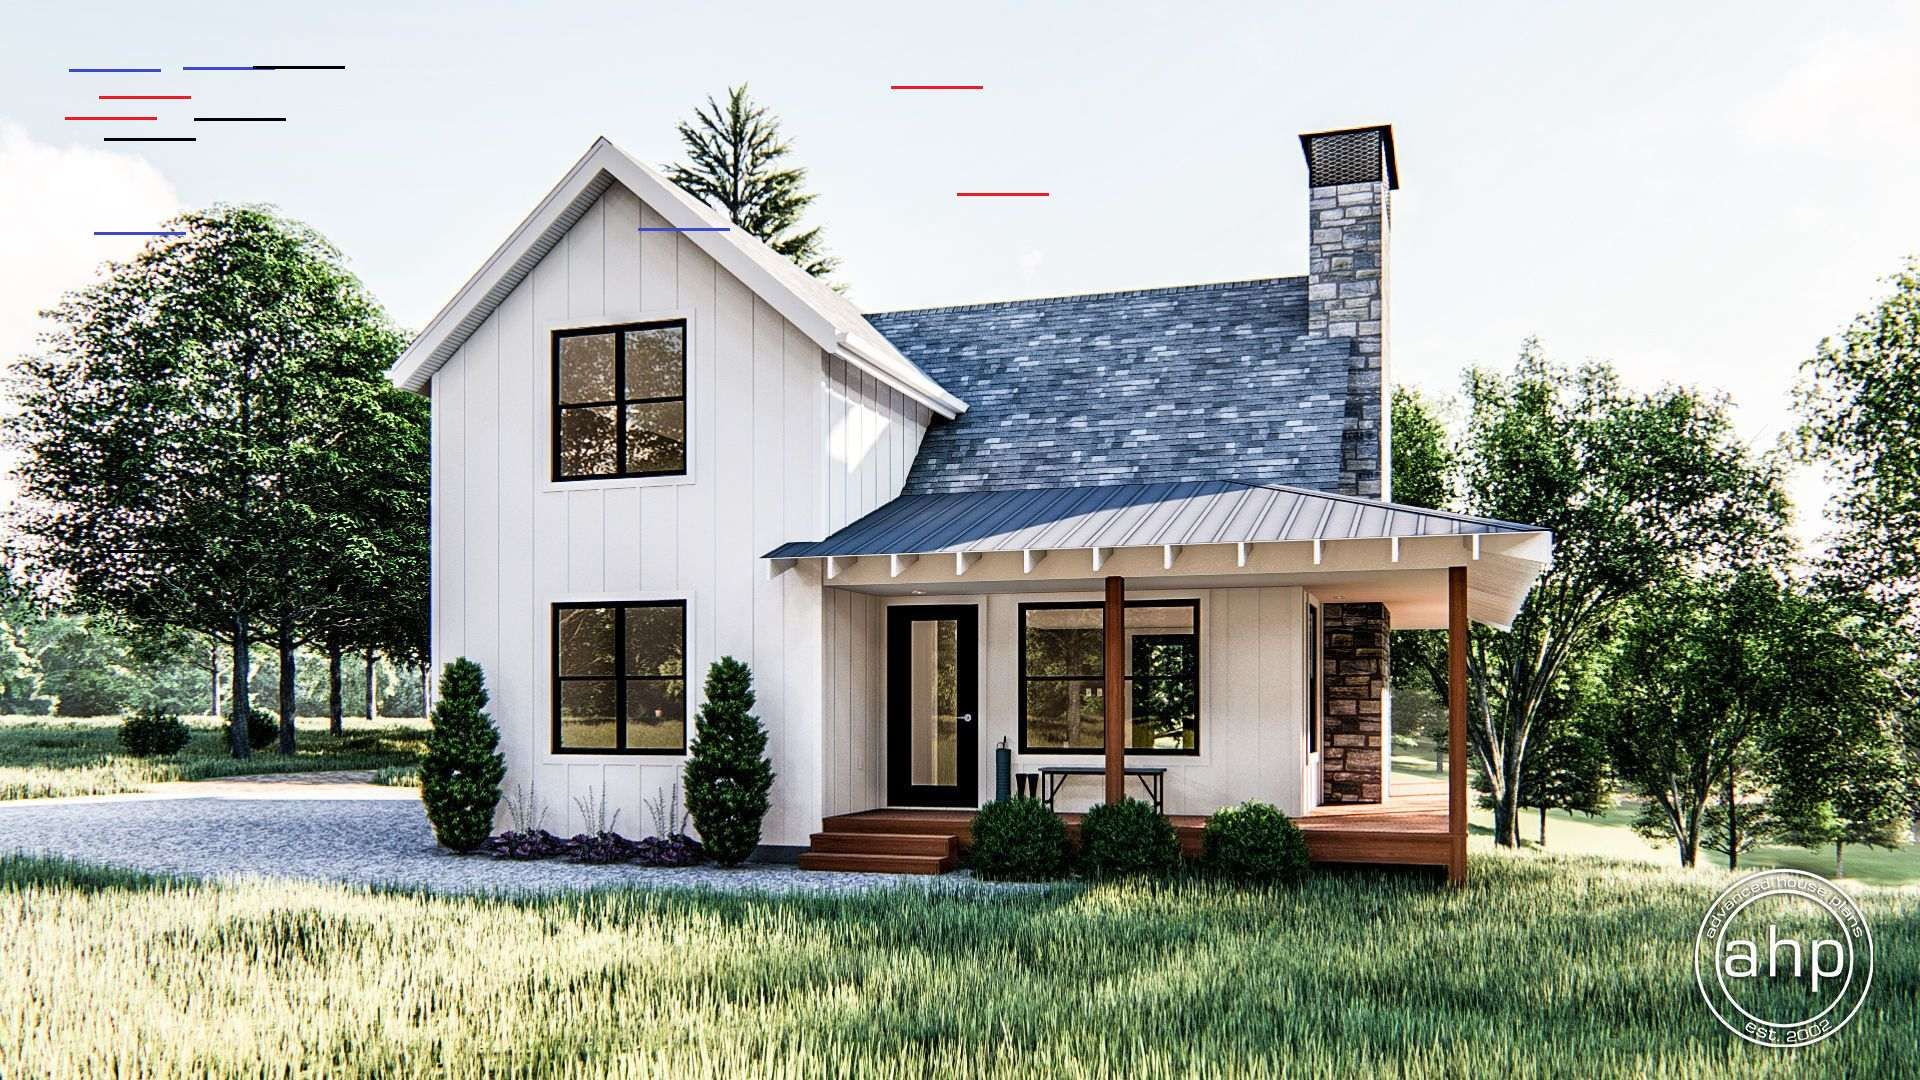 Small Modern Farmhouse Plans To Build Your Dream House 21 Small Modern Farmhouse Plans T Small Farmhouse Plans Modern Farmhouse Plans Modern Farmhouse Exterior